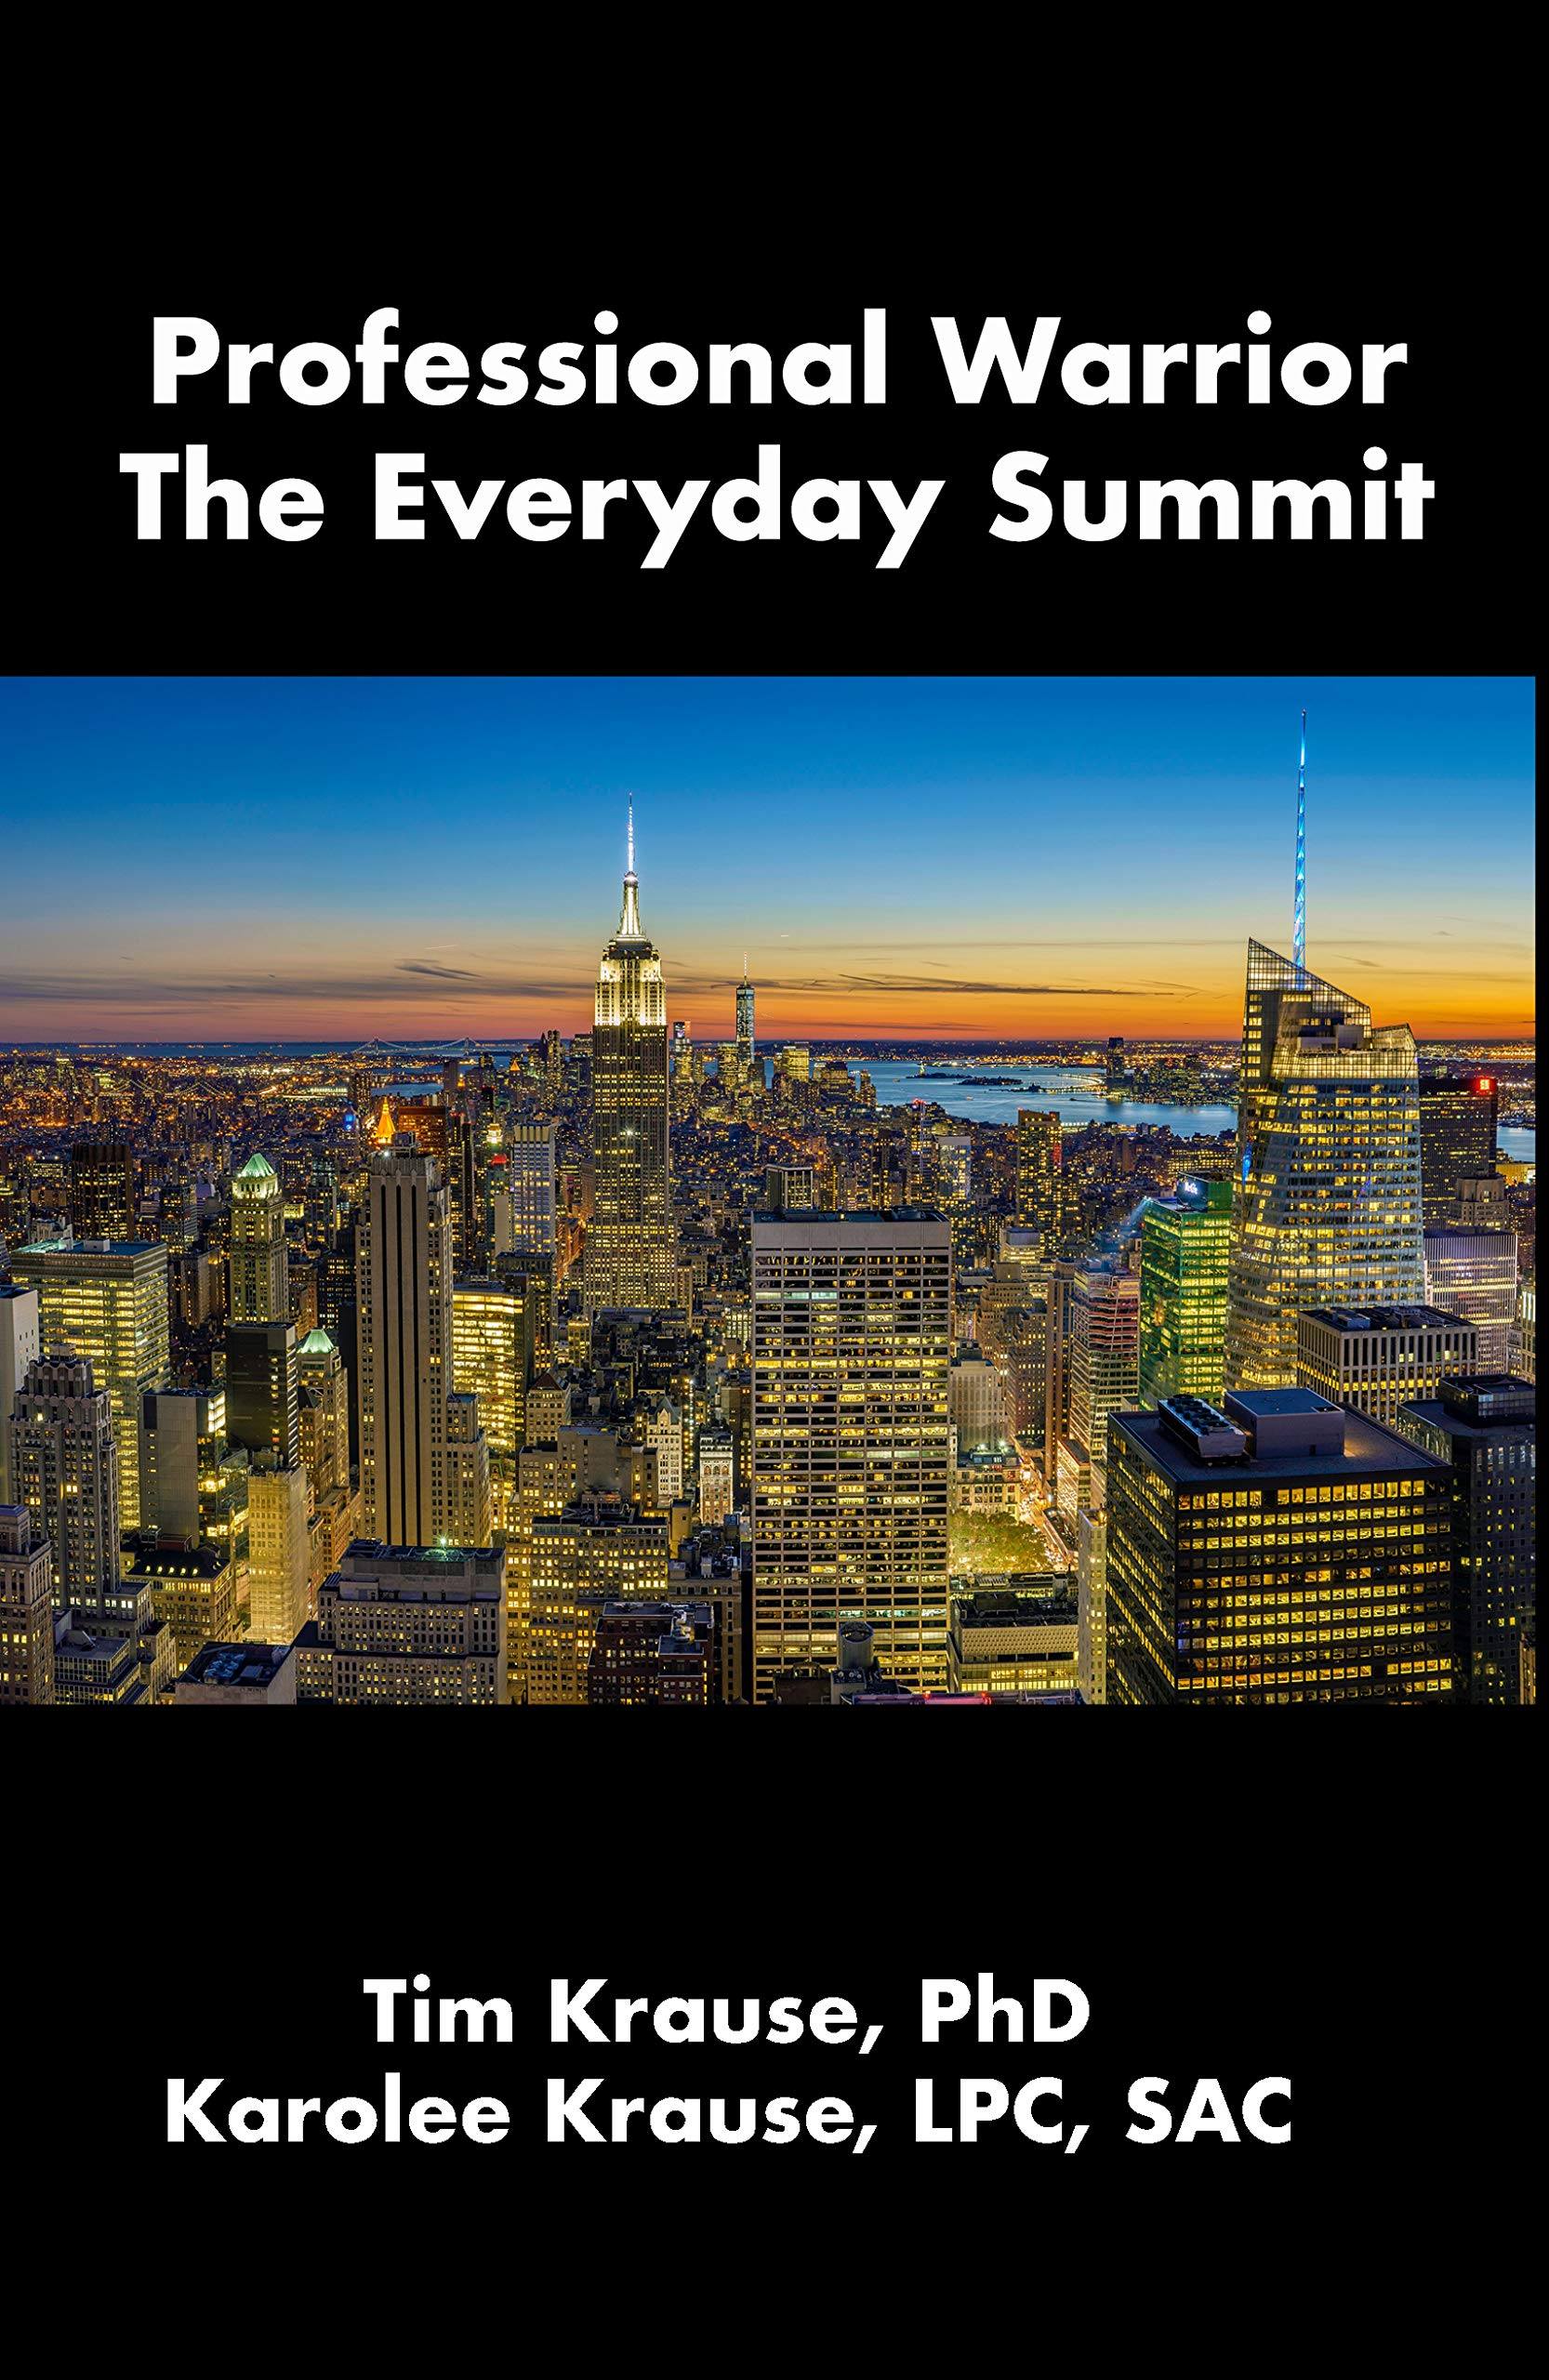 Professional Warrior: The Everday Summit